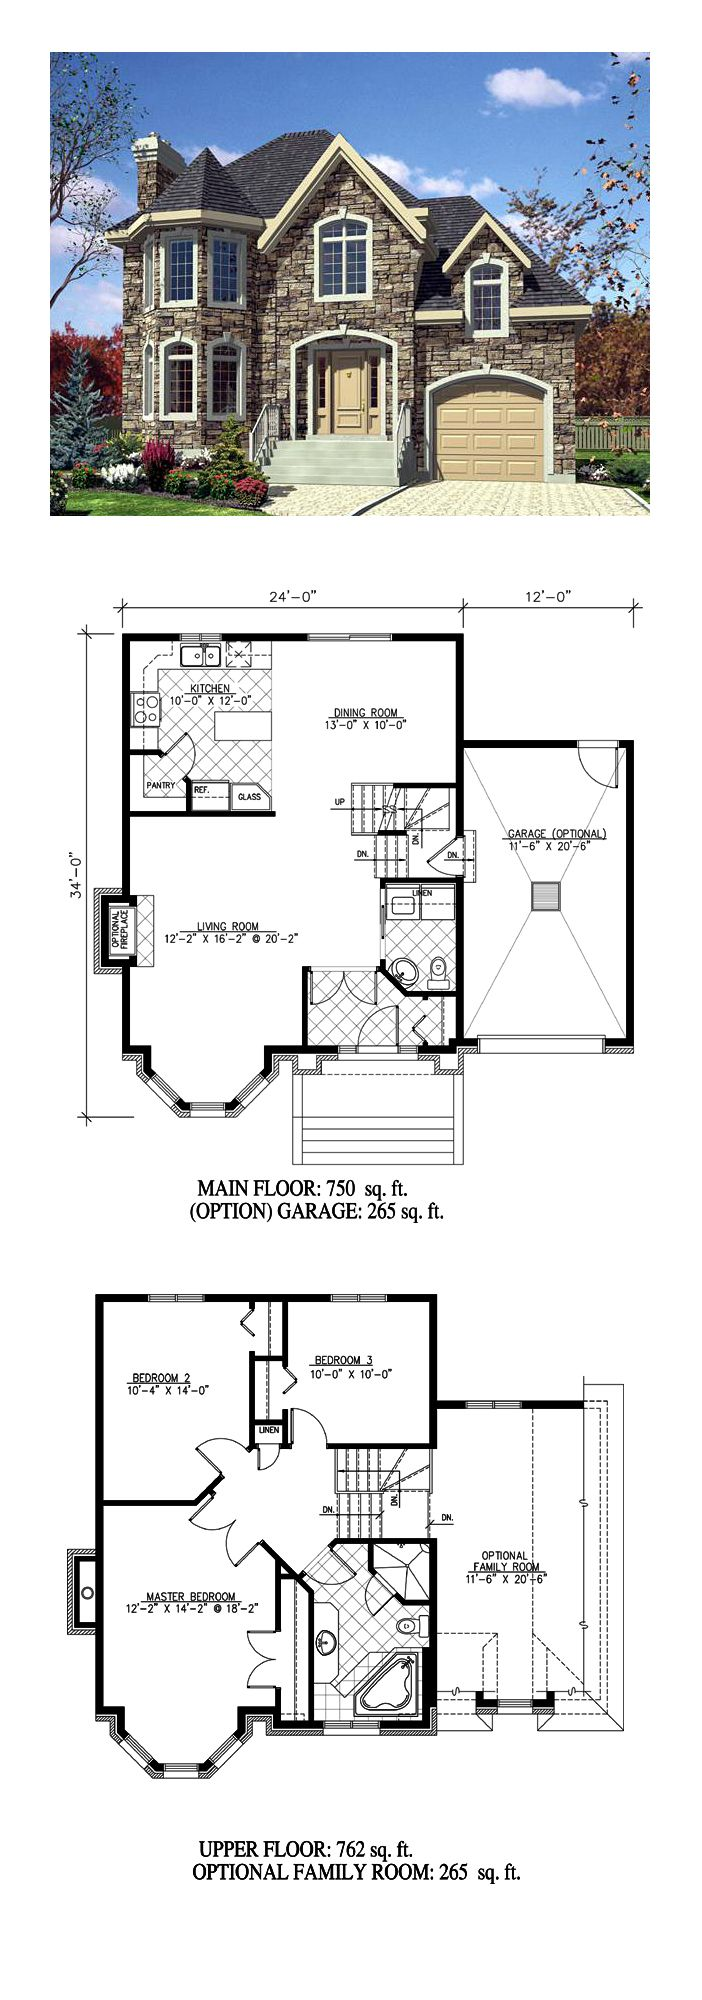 Best 25 sims house ideas on pinterest sims house plans for Sims 2 house designs floor plans